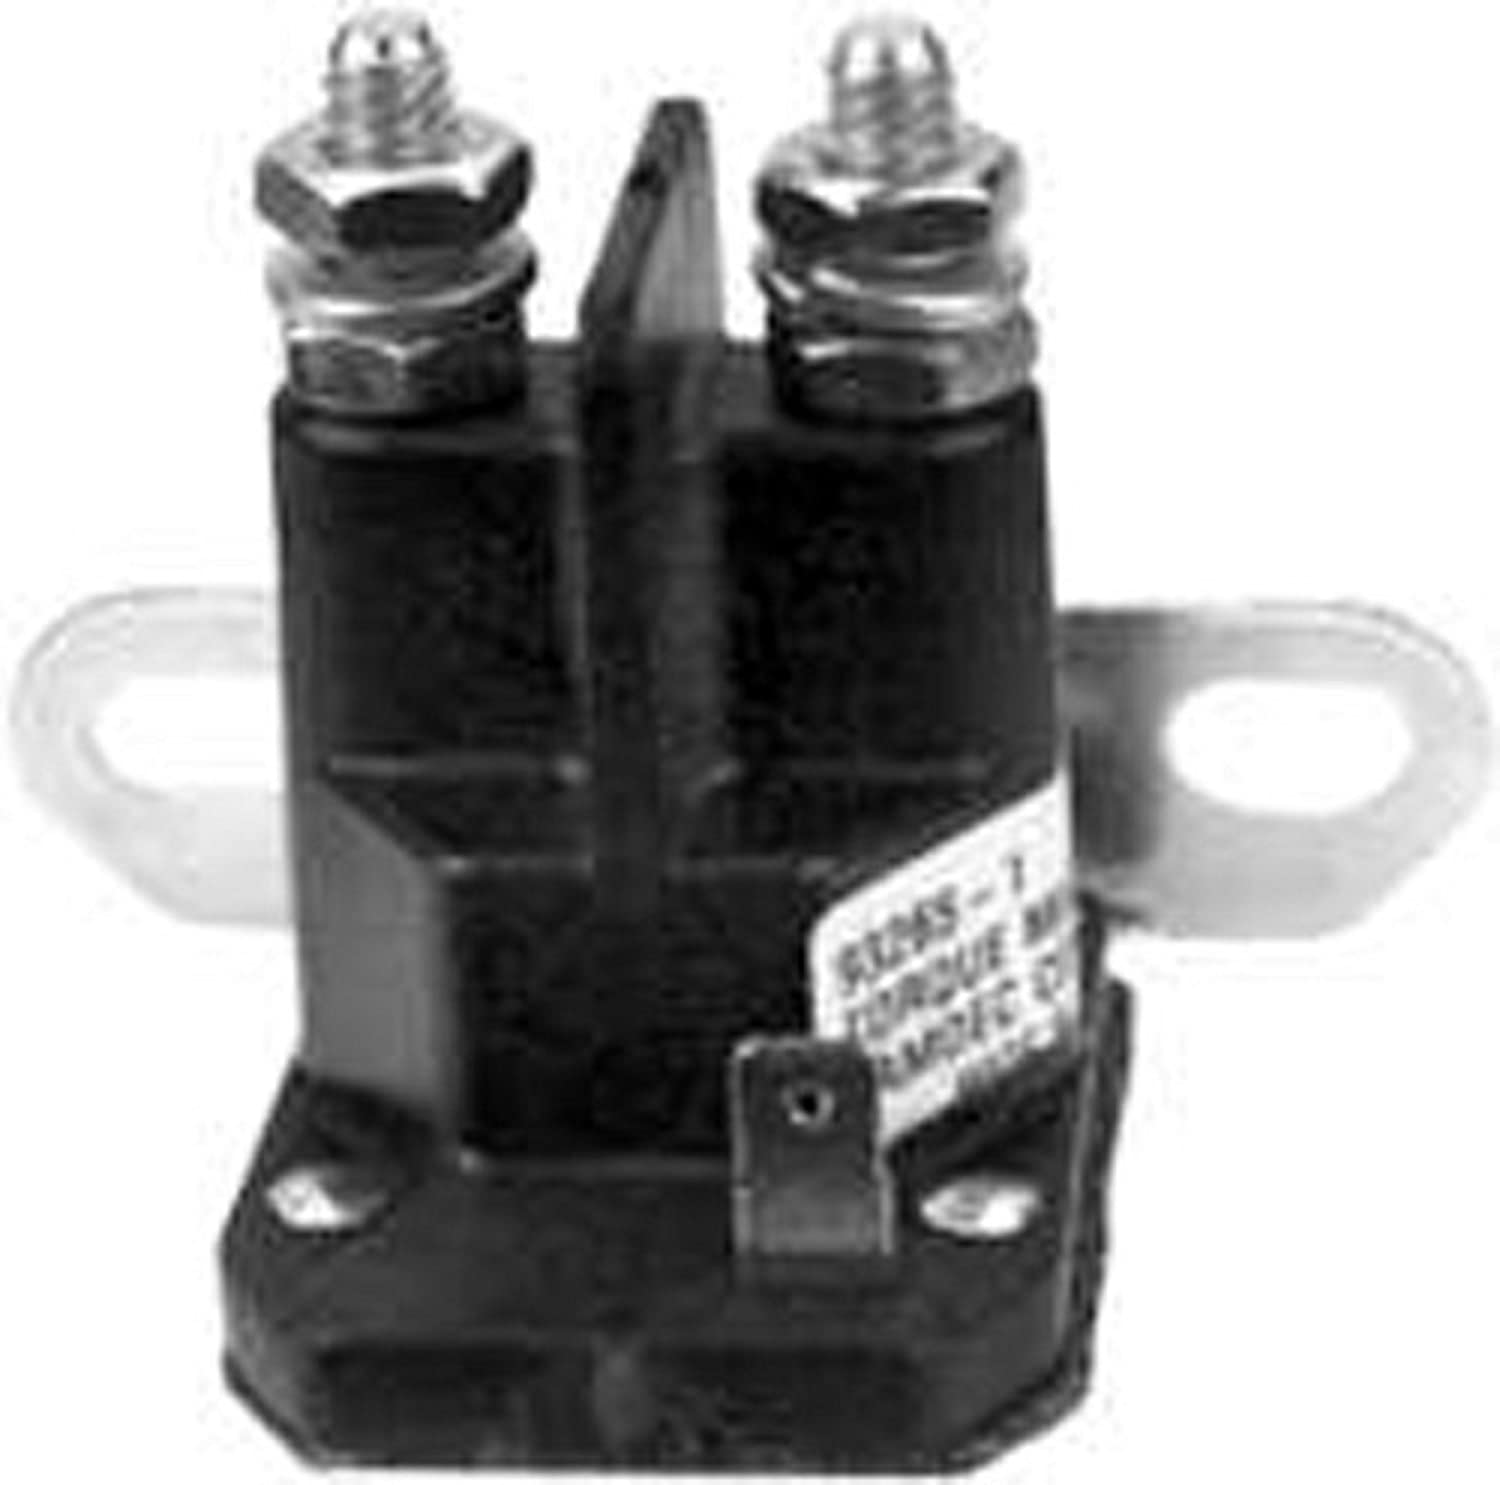 810j368Wm8L._SL1500_ amazon com mtd, ward, yard man, starter solenoid; 725 1426, 925  at mifinder.co